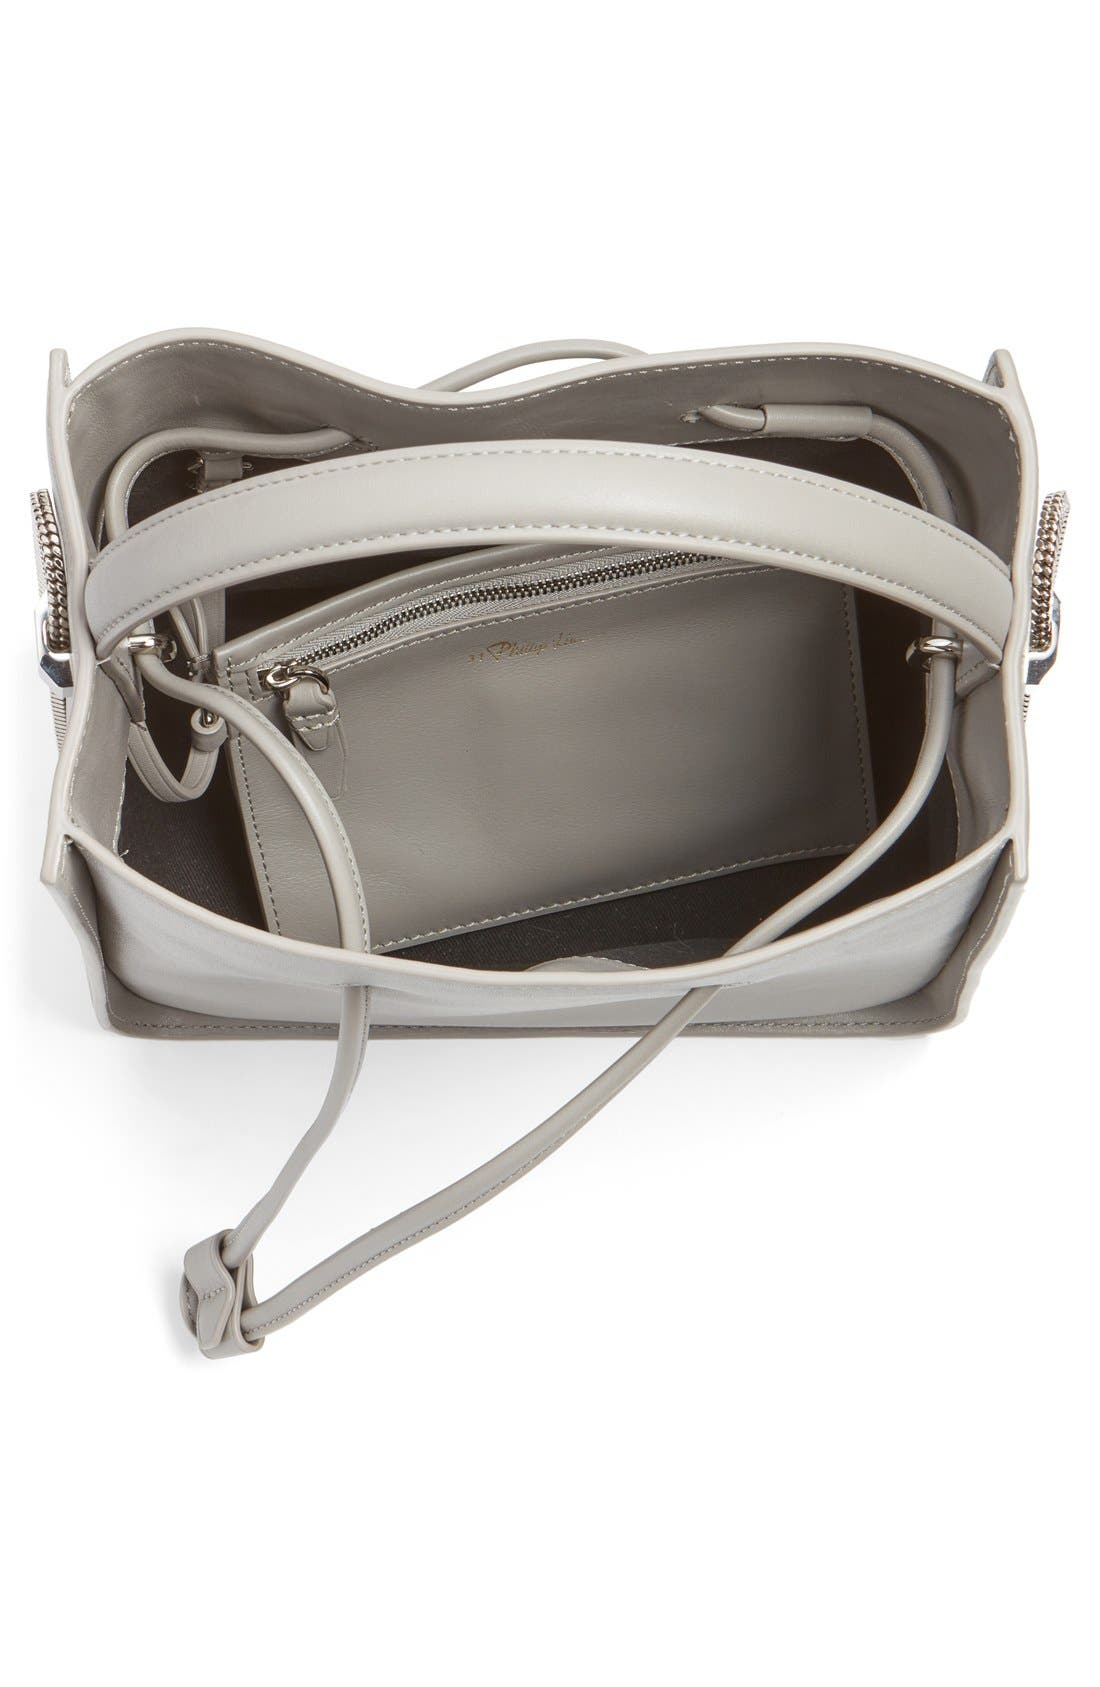 Alternate Image 3  - 3.1 Phillip Lim 'Small Soleil' Leather Bucket Bag